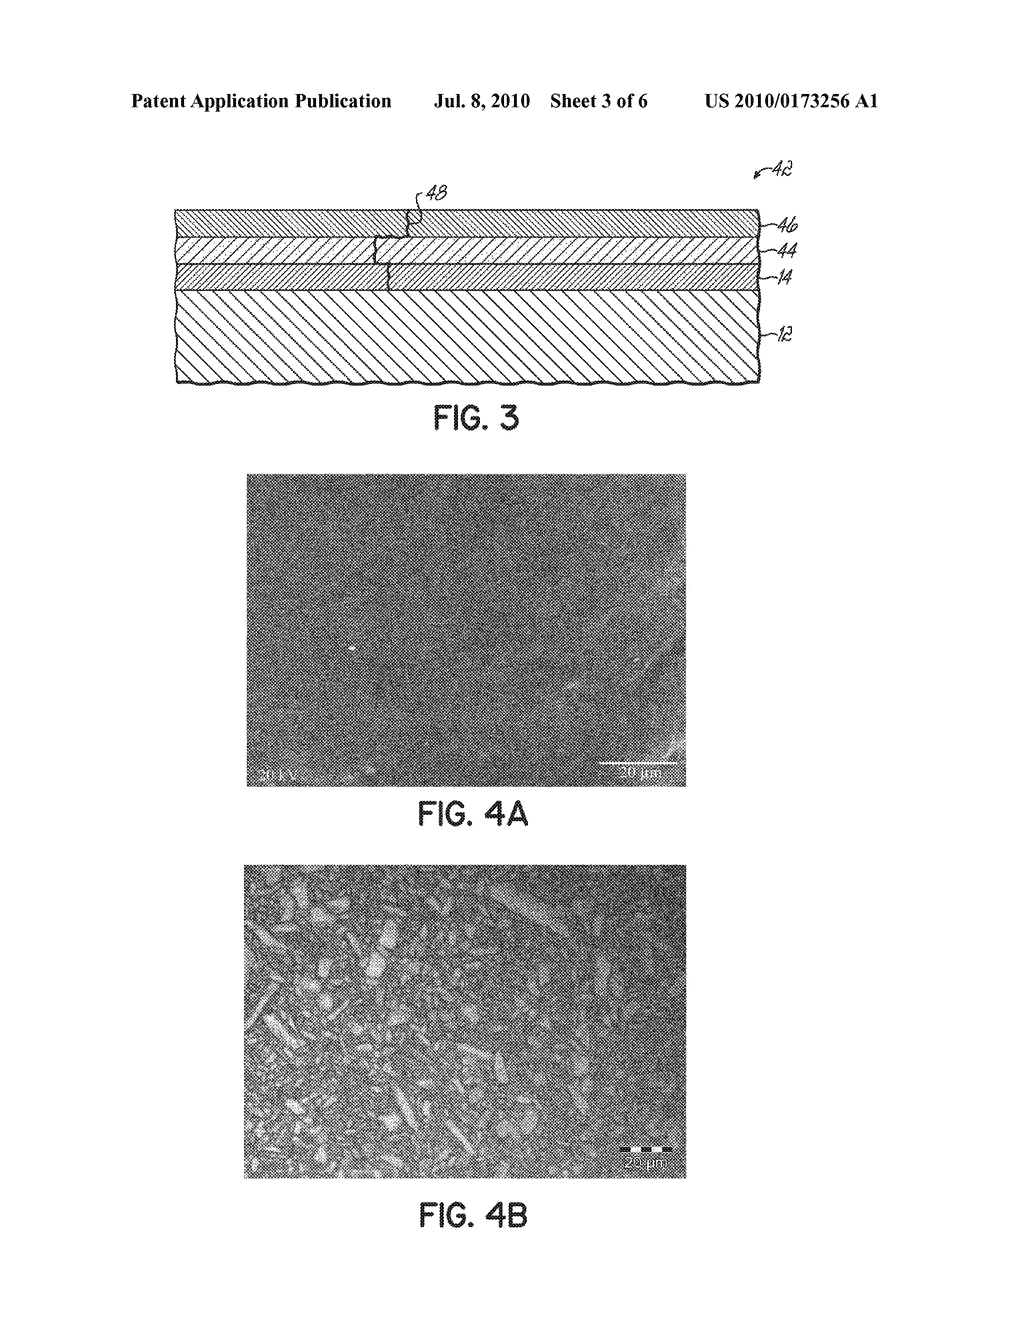 Surface Treated Polycrystalline Ceramic Orthodontic Bracket and Method of Making Same - diagram, schematic, and image 04